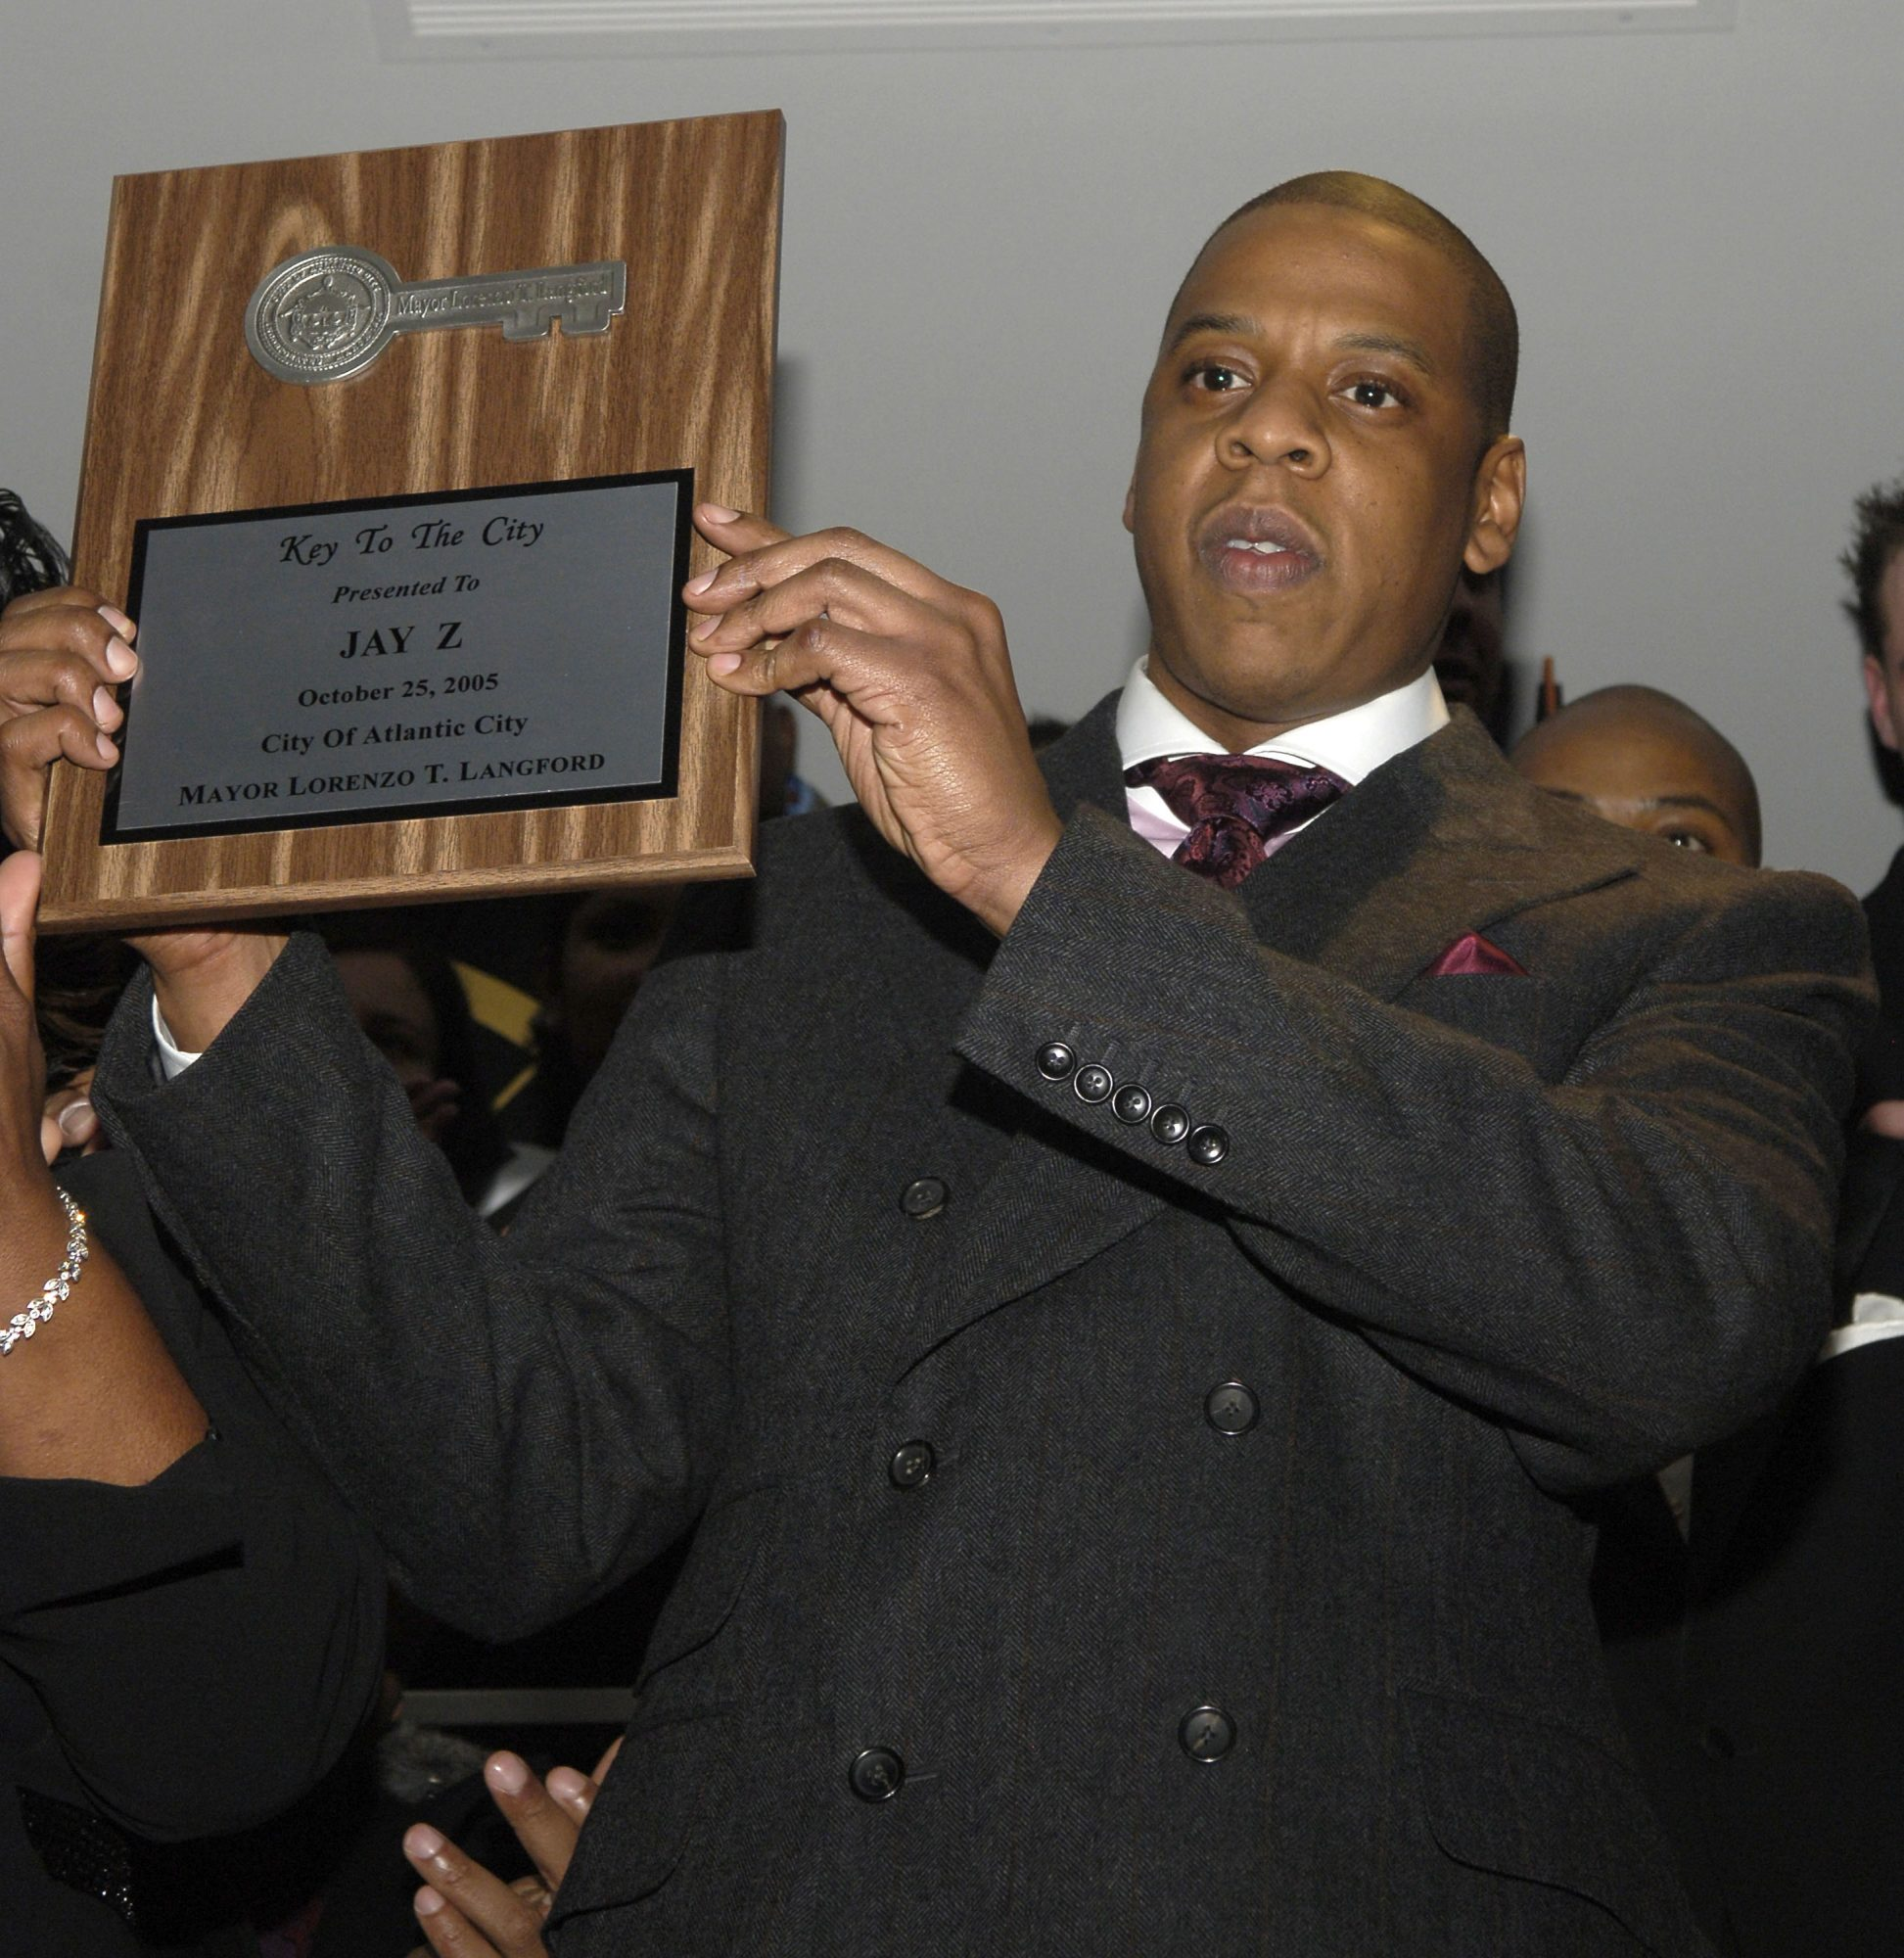 Jay-Z Celebrates The Grand Opening of The 40/40 Club in Atlantic City